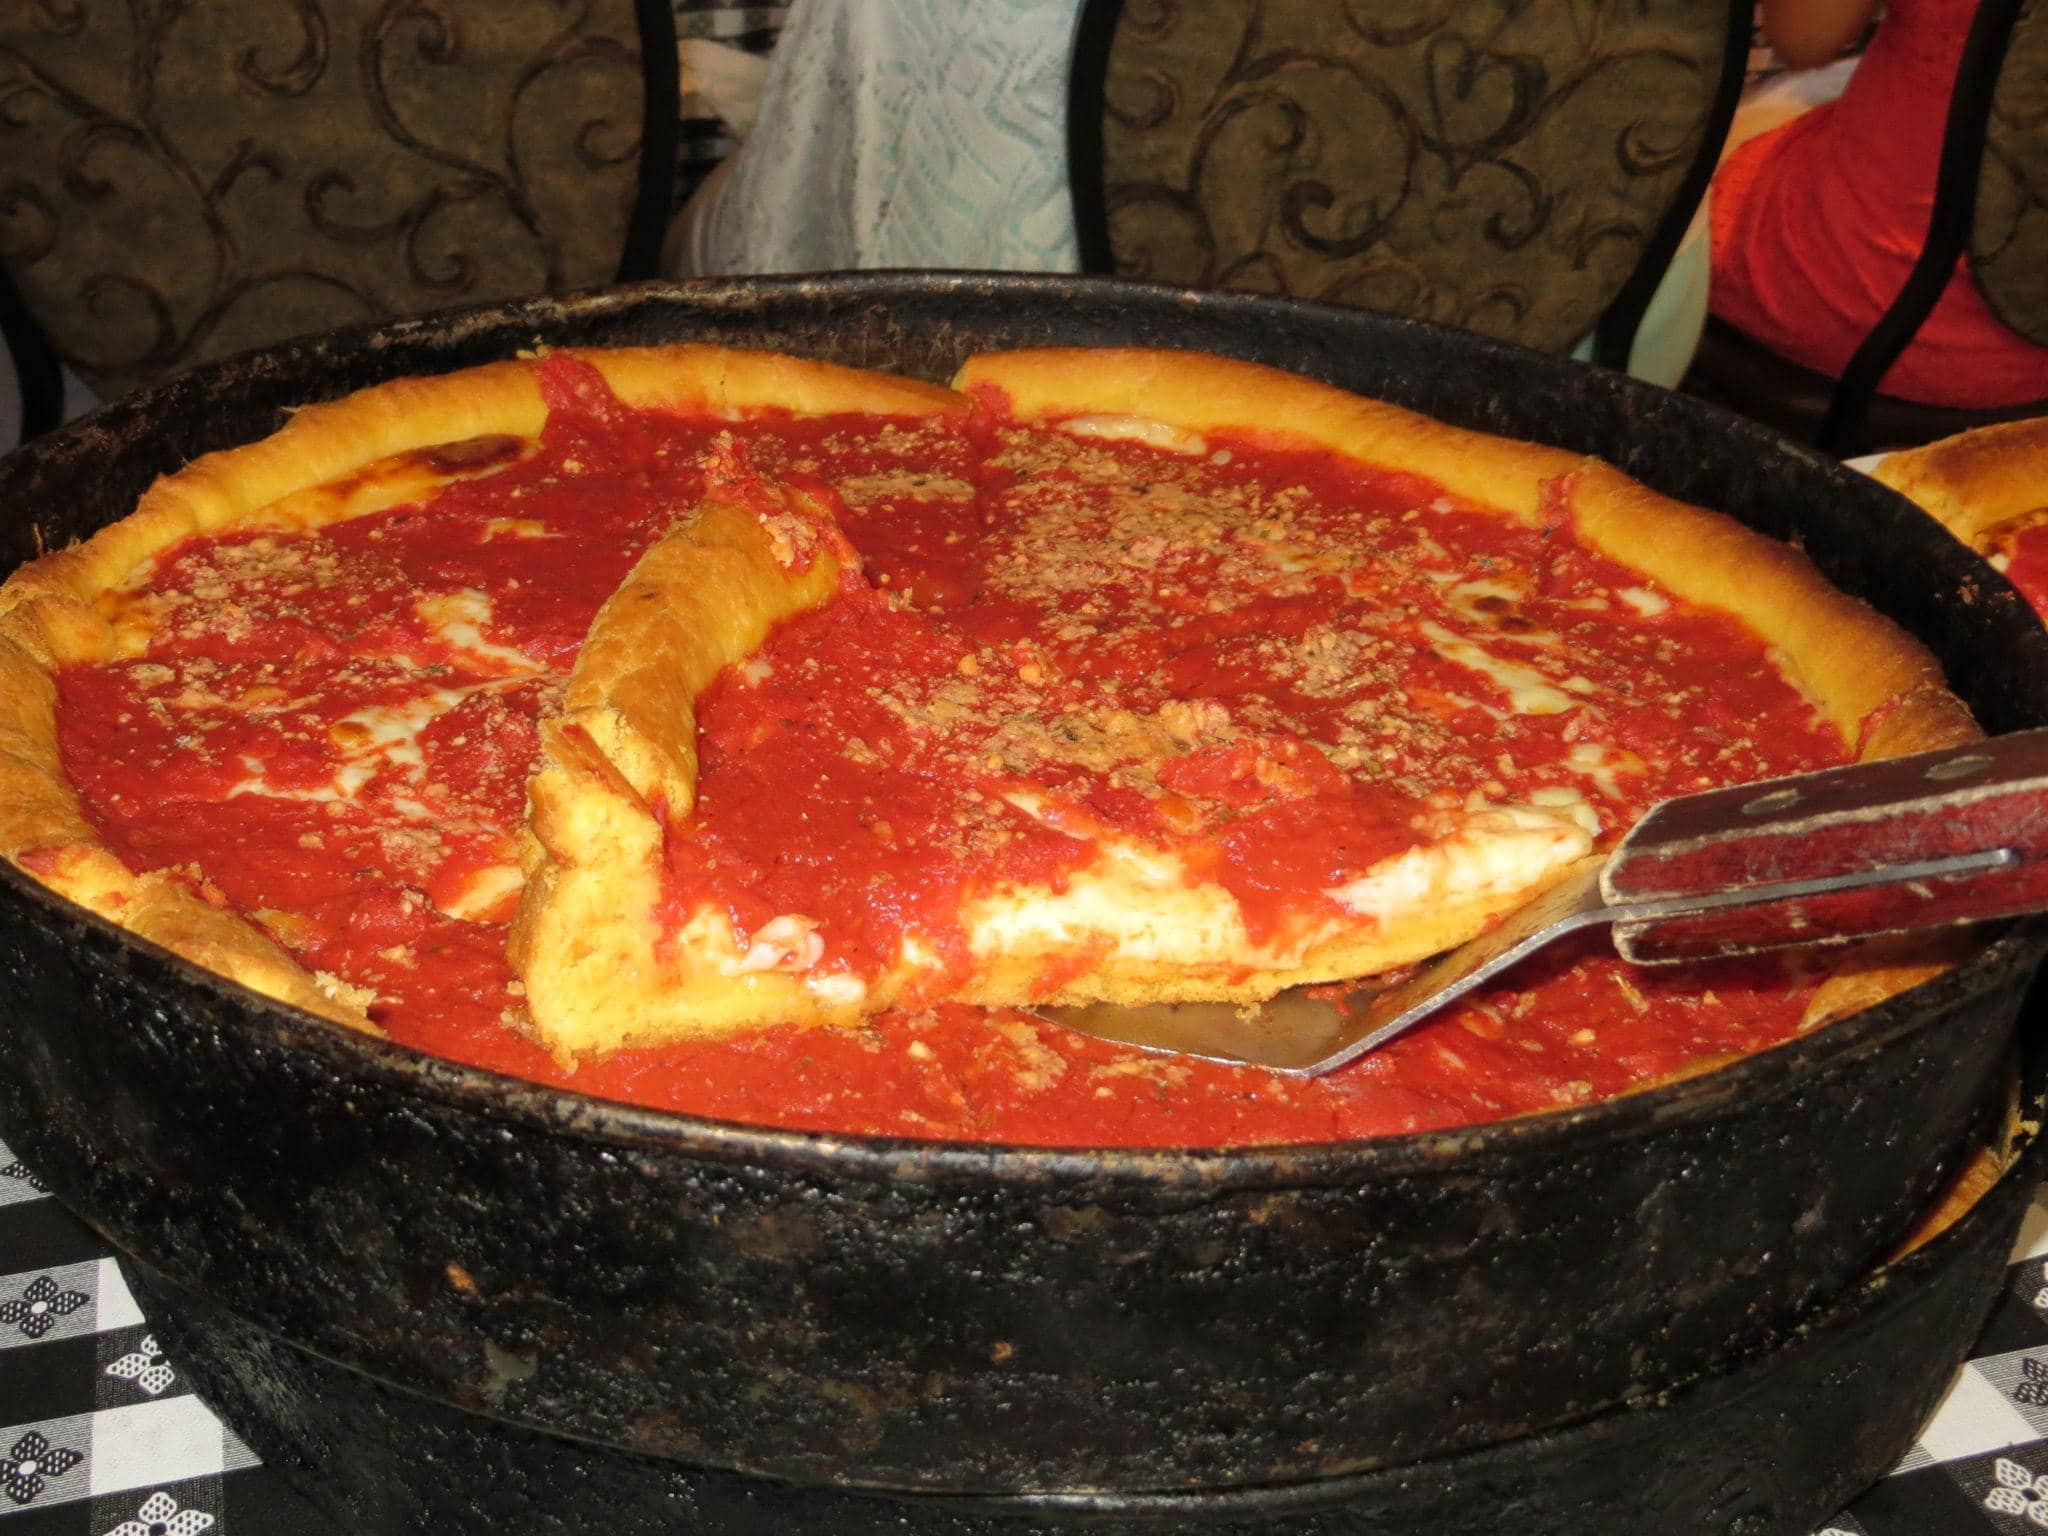 Chicago Style Deep Dish Pizza was worth the wait